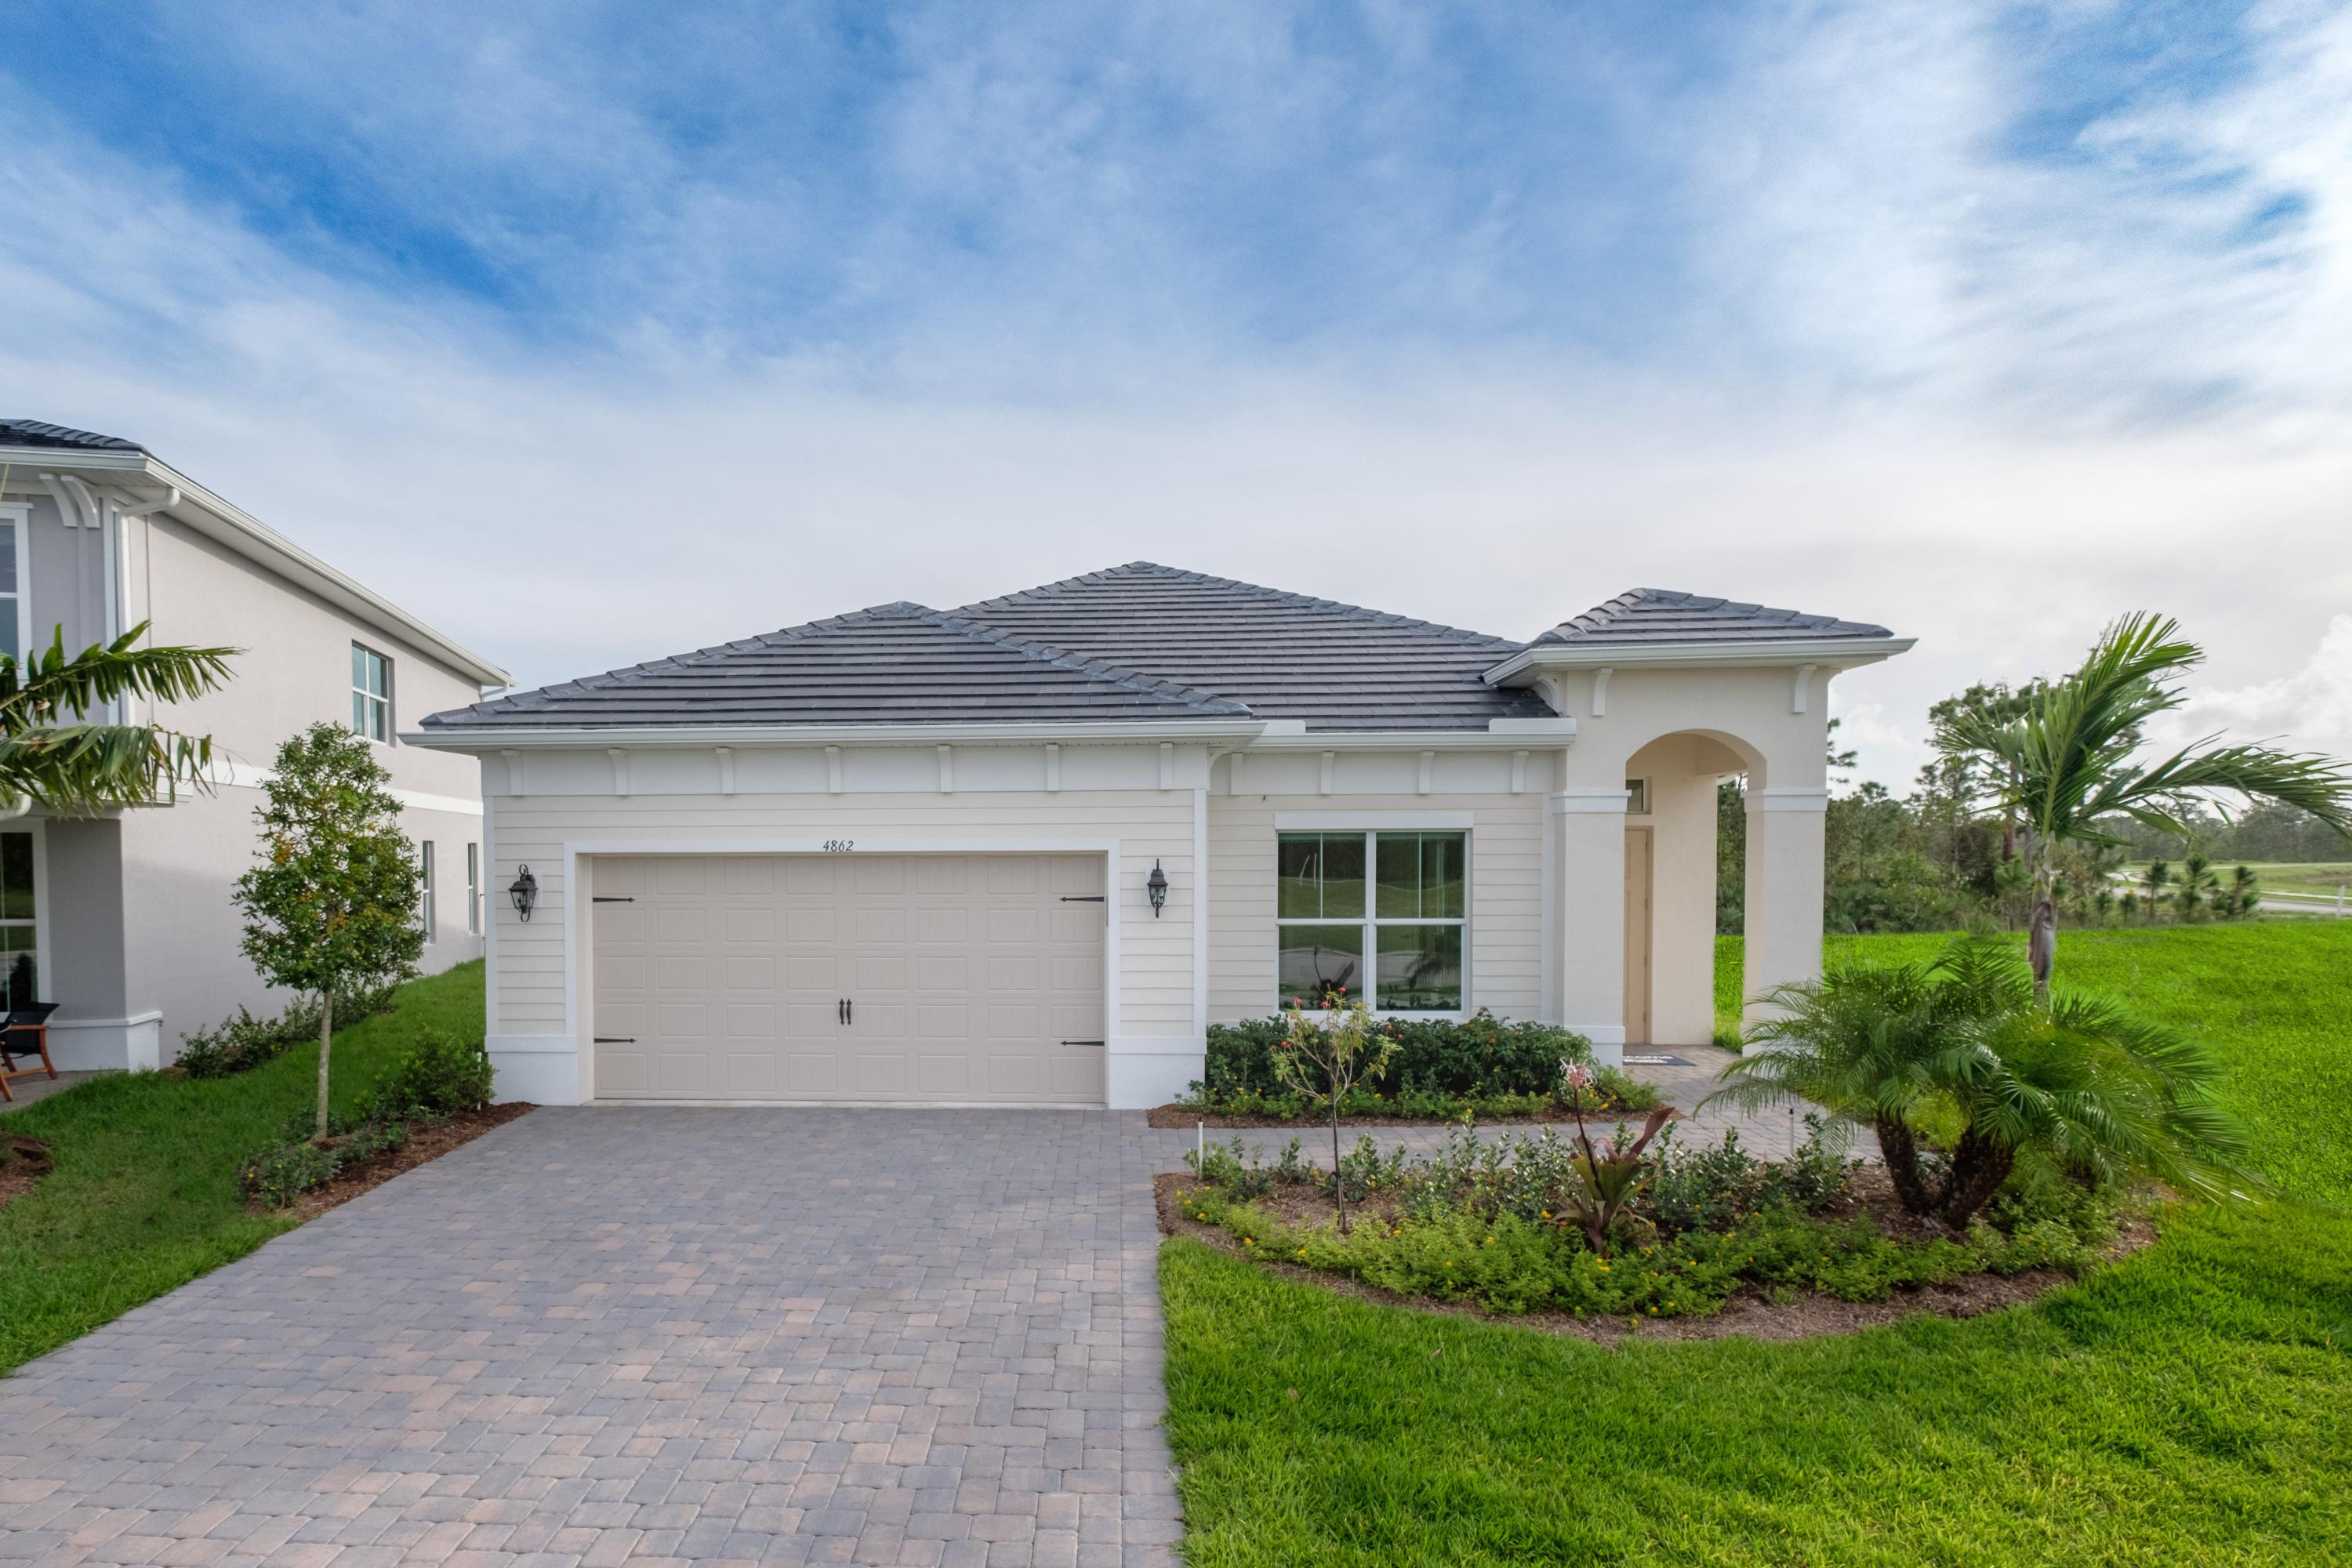 19661 Wheelbarrow Bend 33470 - One of Loxahatchee Homes for Sale